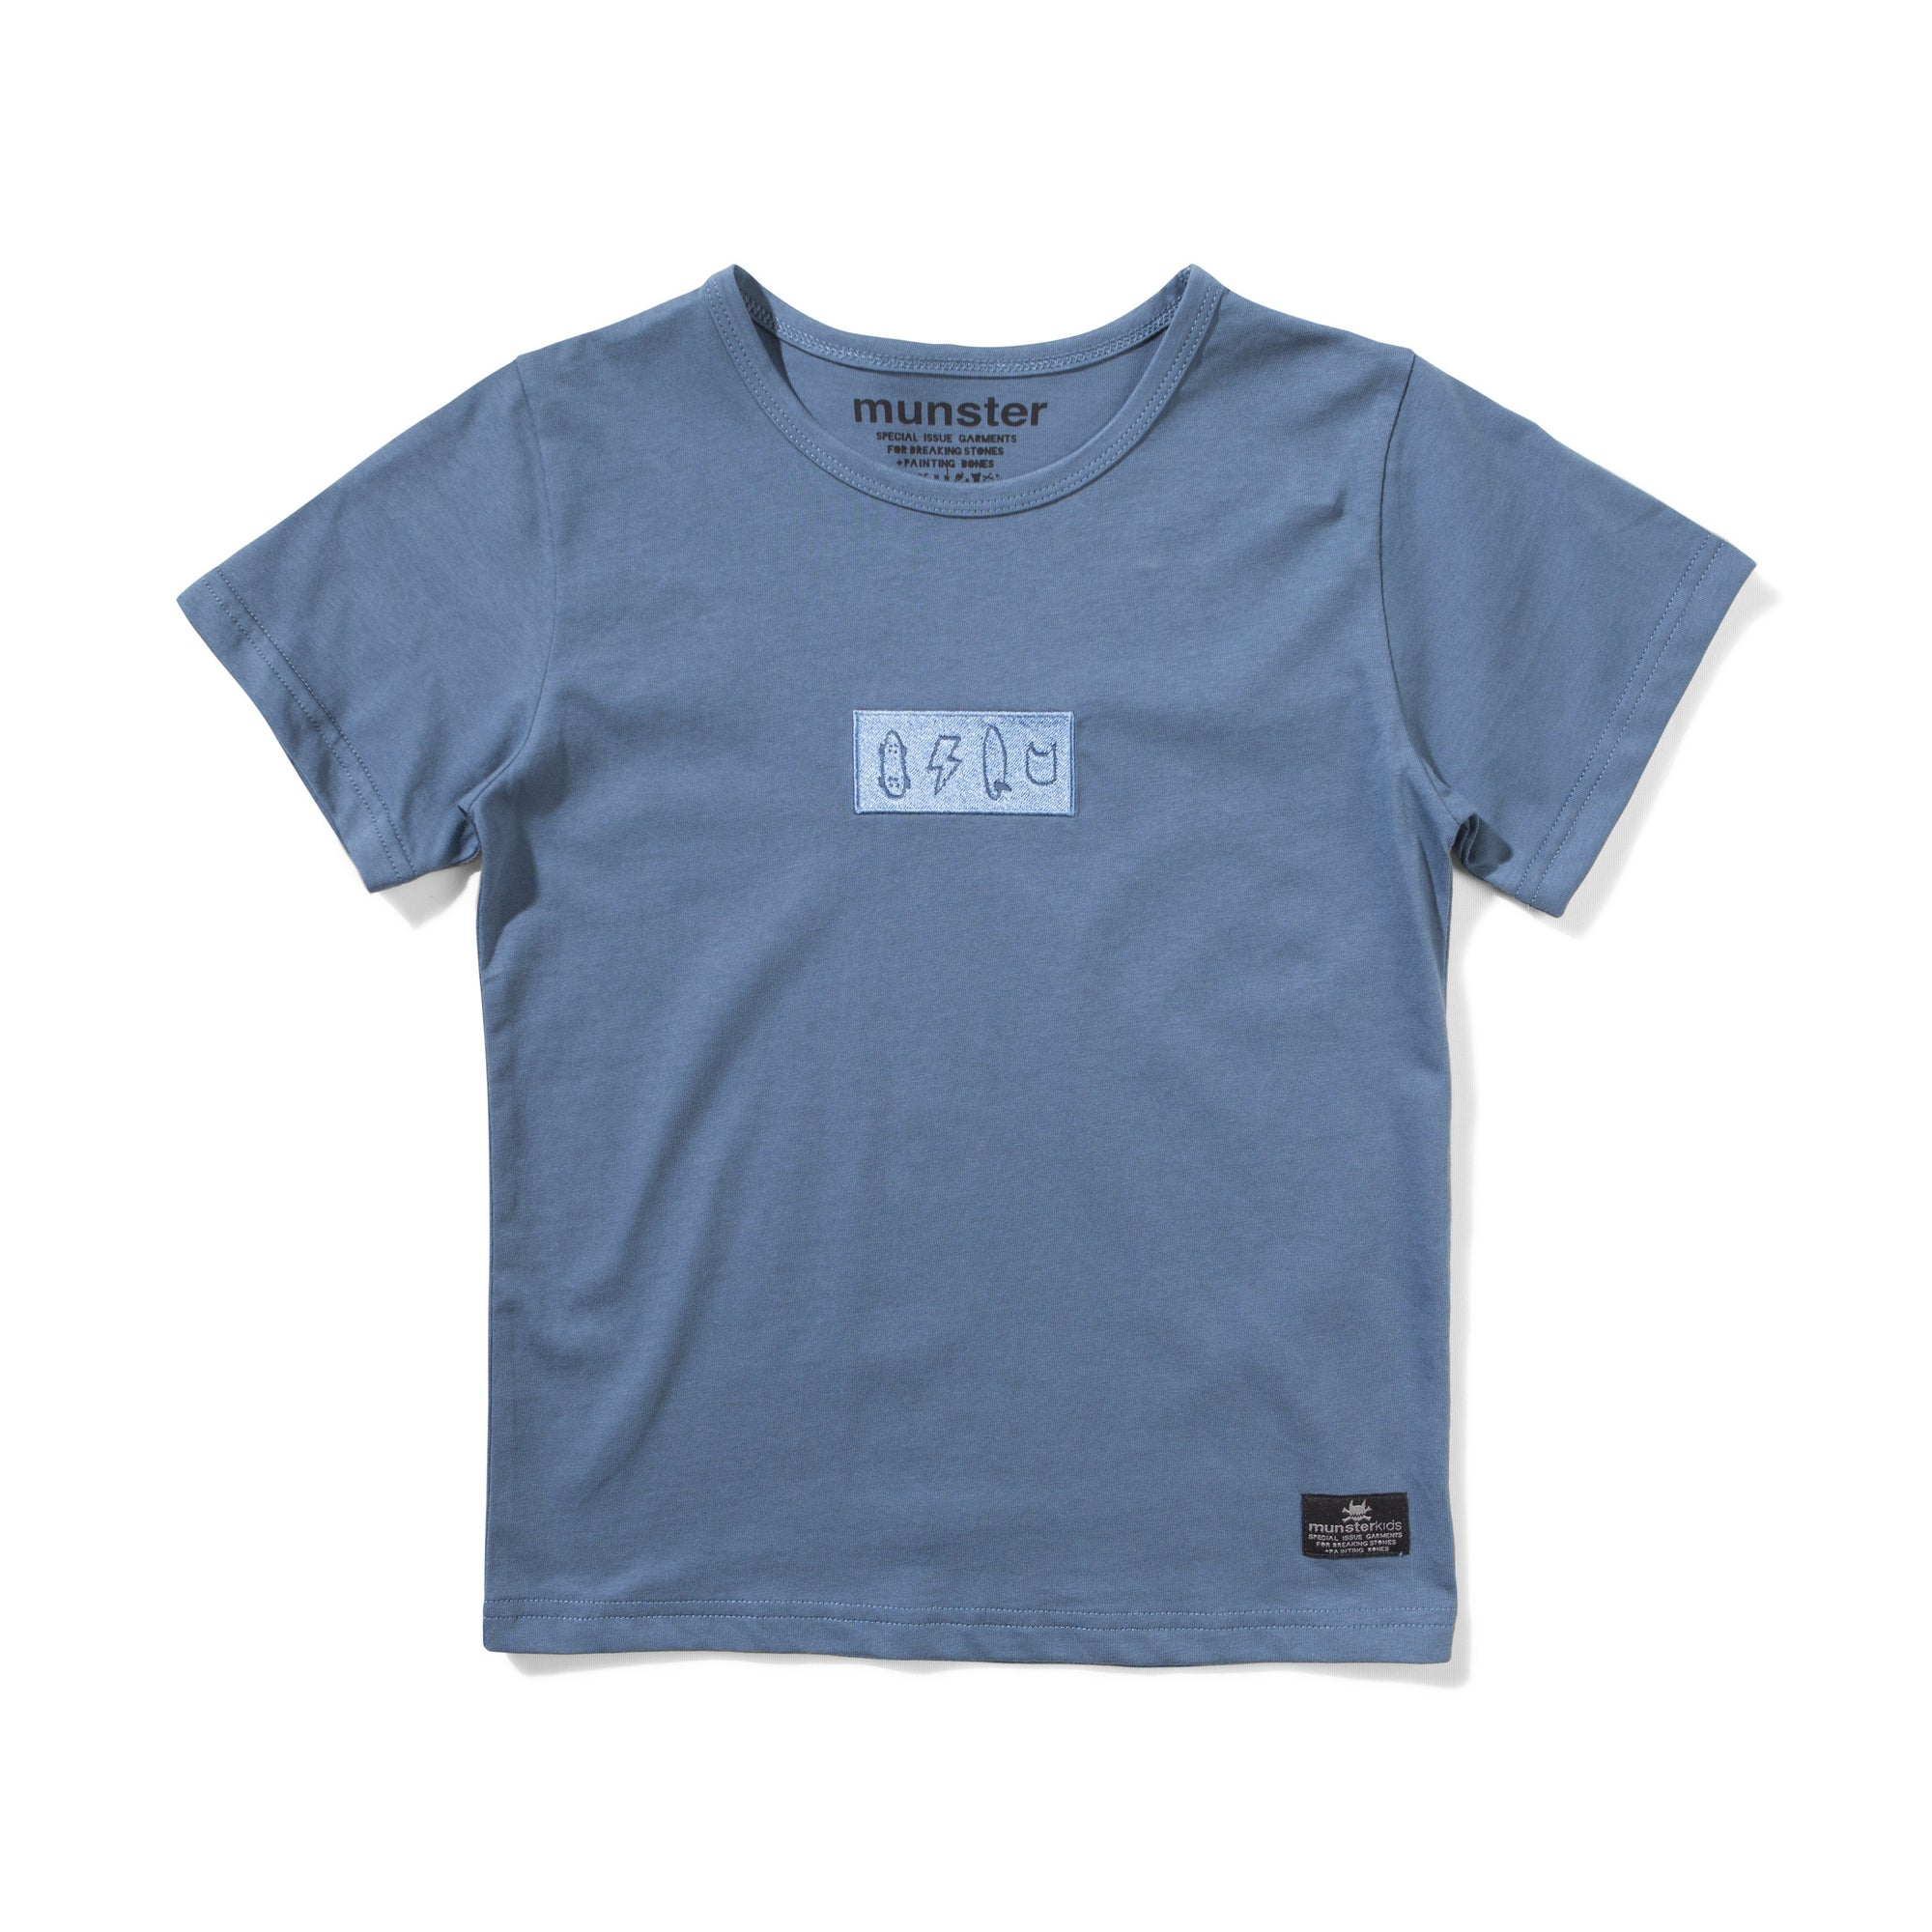 BRANDED TEE BOYS CLOTHING MUNSTER 3 BLUE